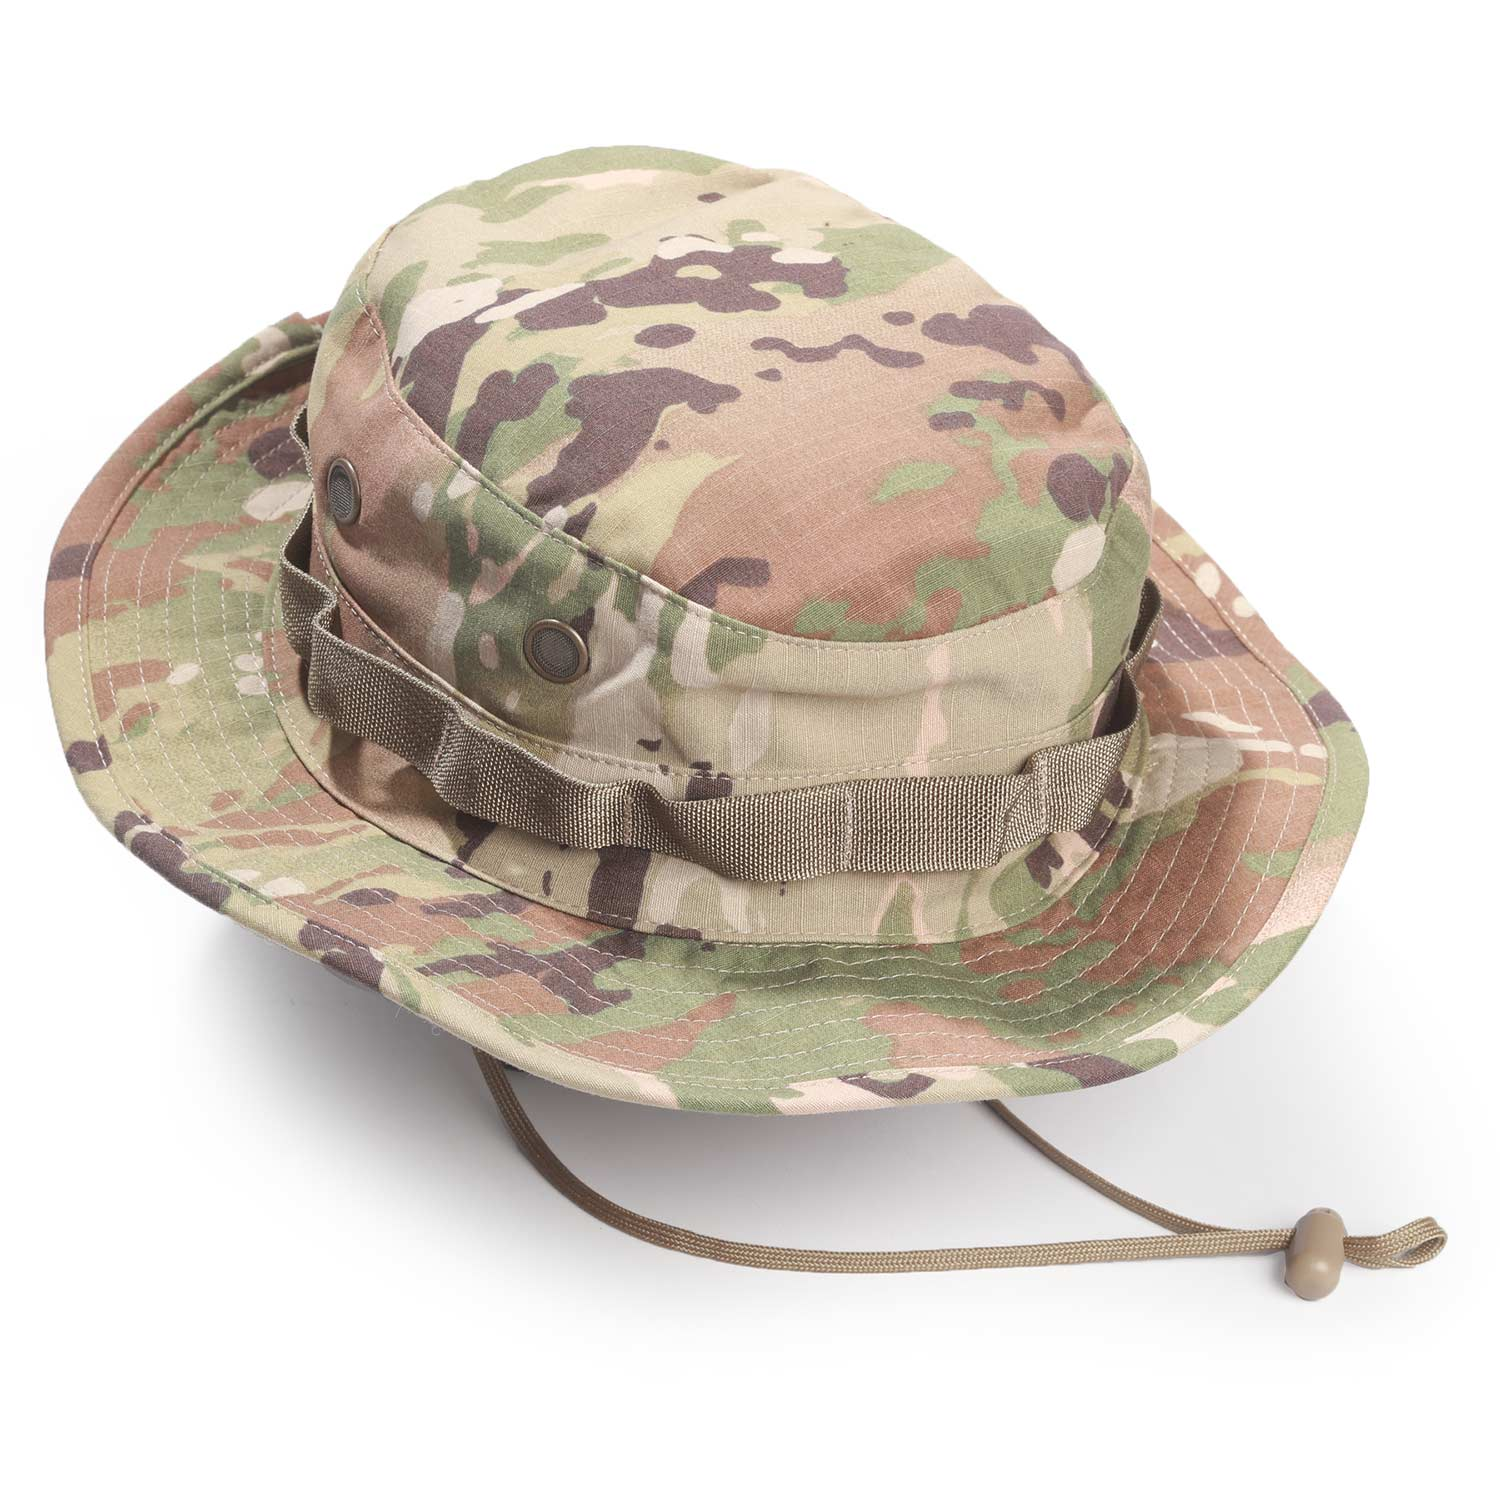 TRU-SPEC OCP Scorpion W2 Army Combat Uniform Boonie Hat